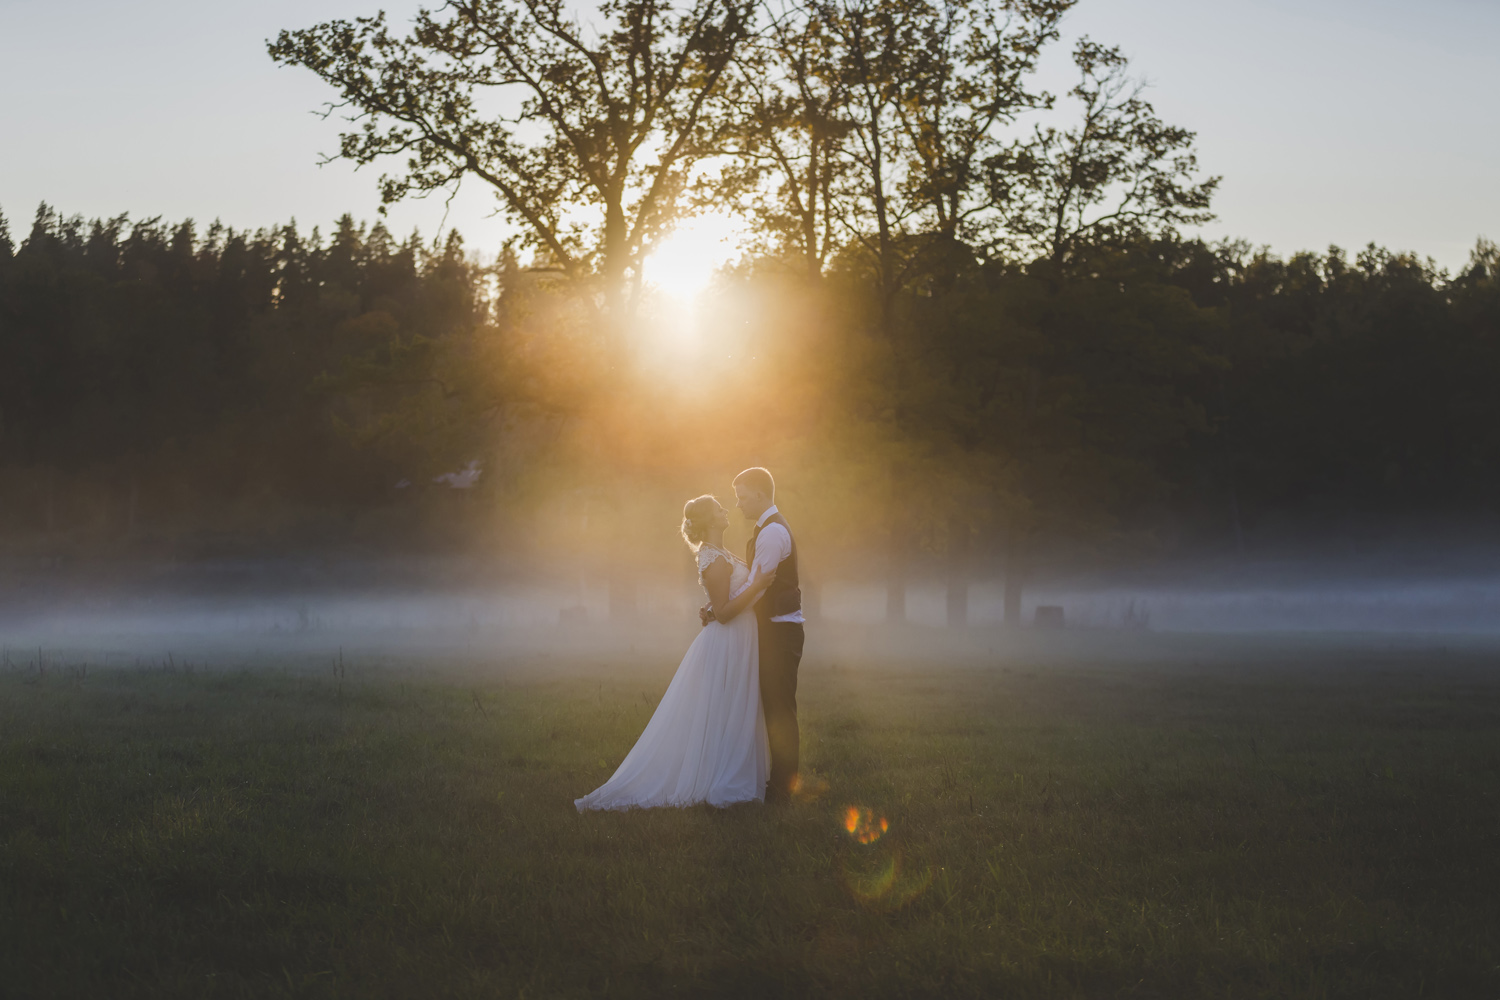 Romantic Sunset Wedding photo by wedding photographer Valdur Rosenvald